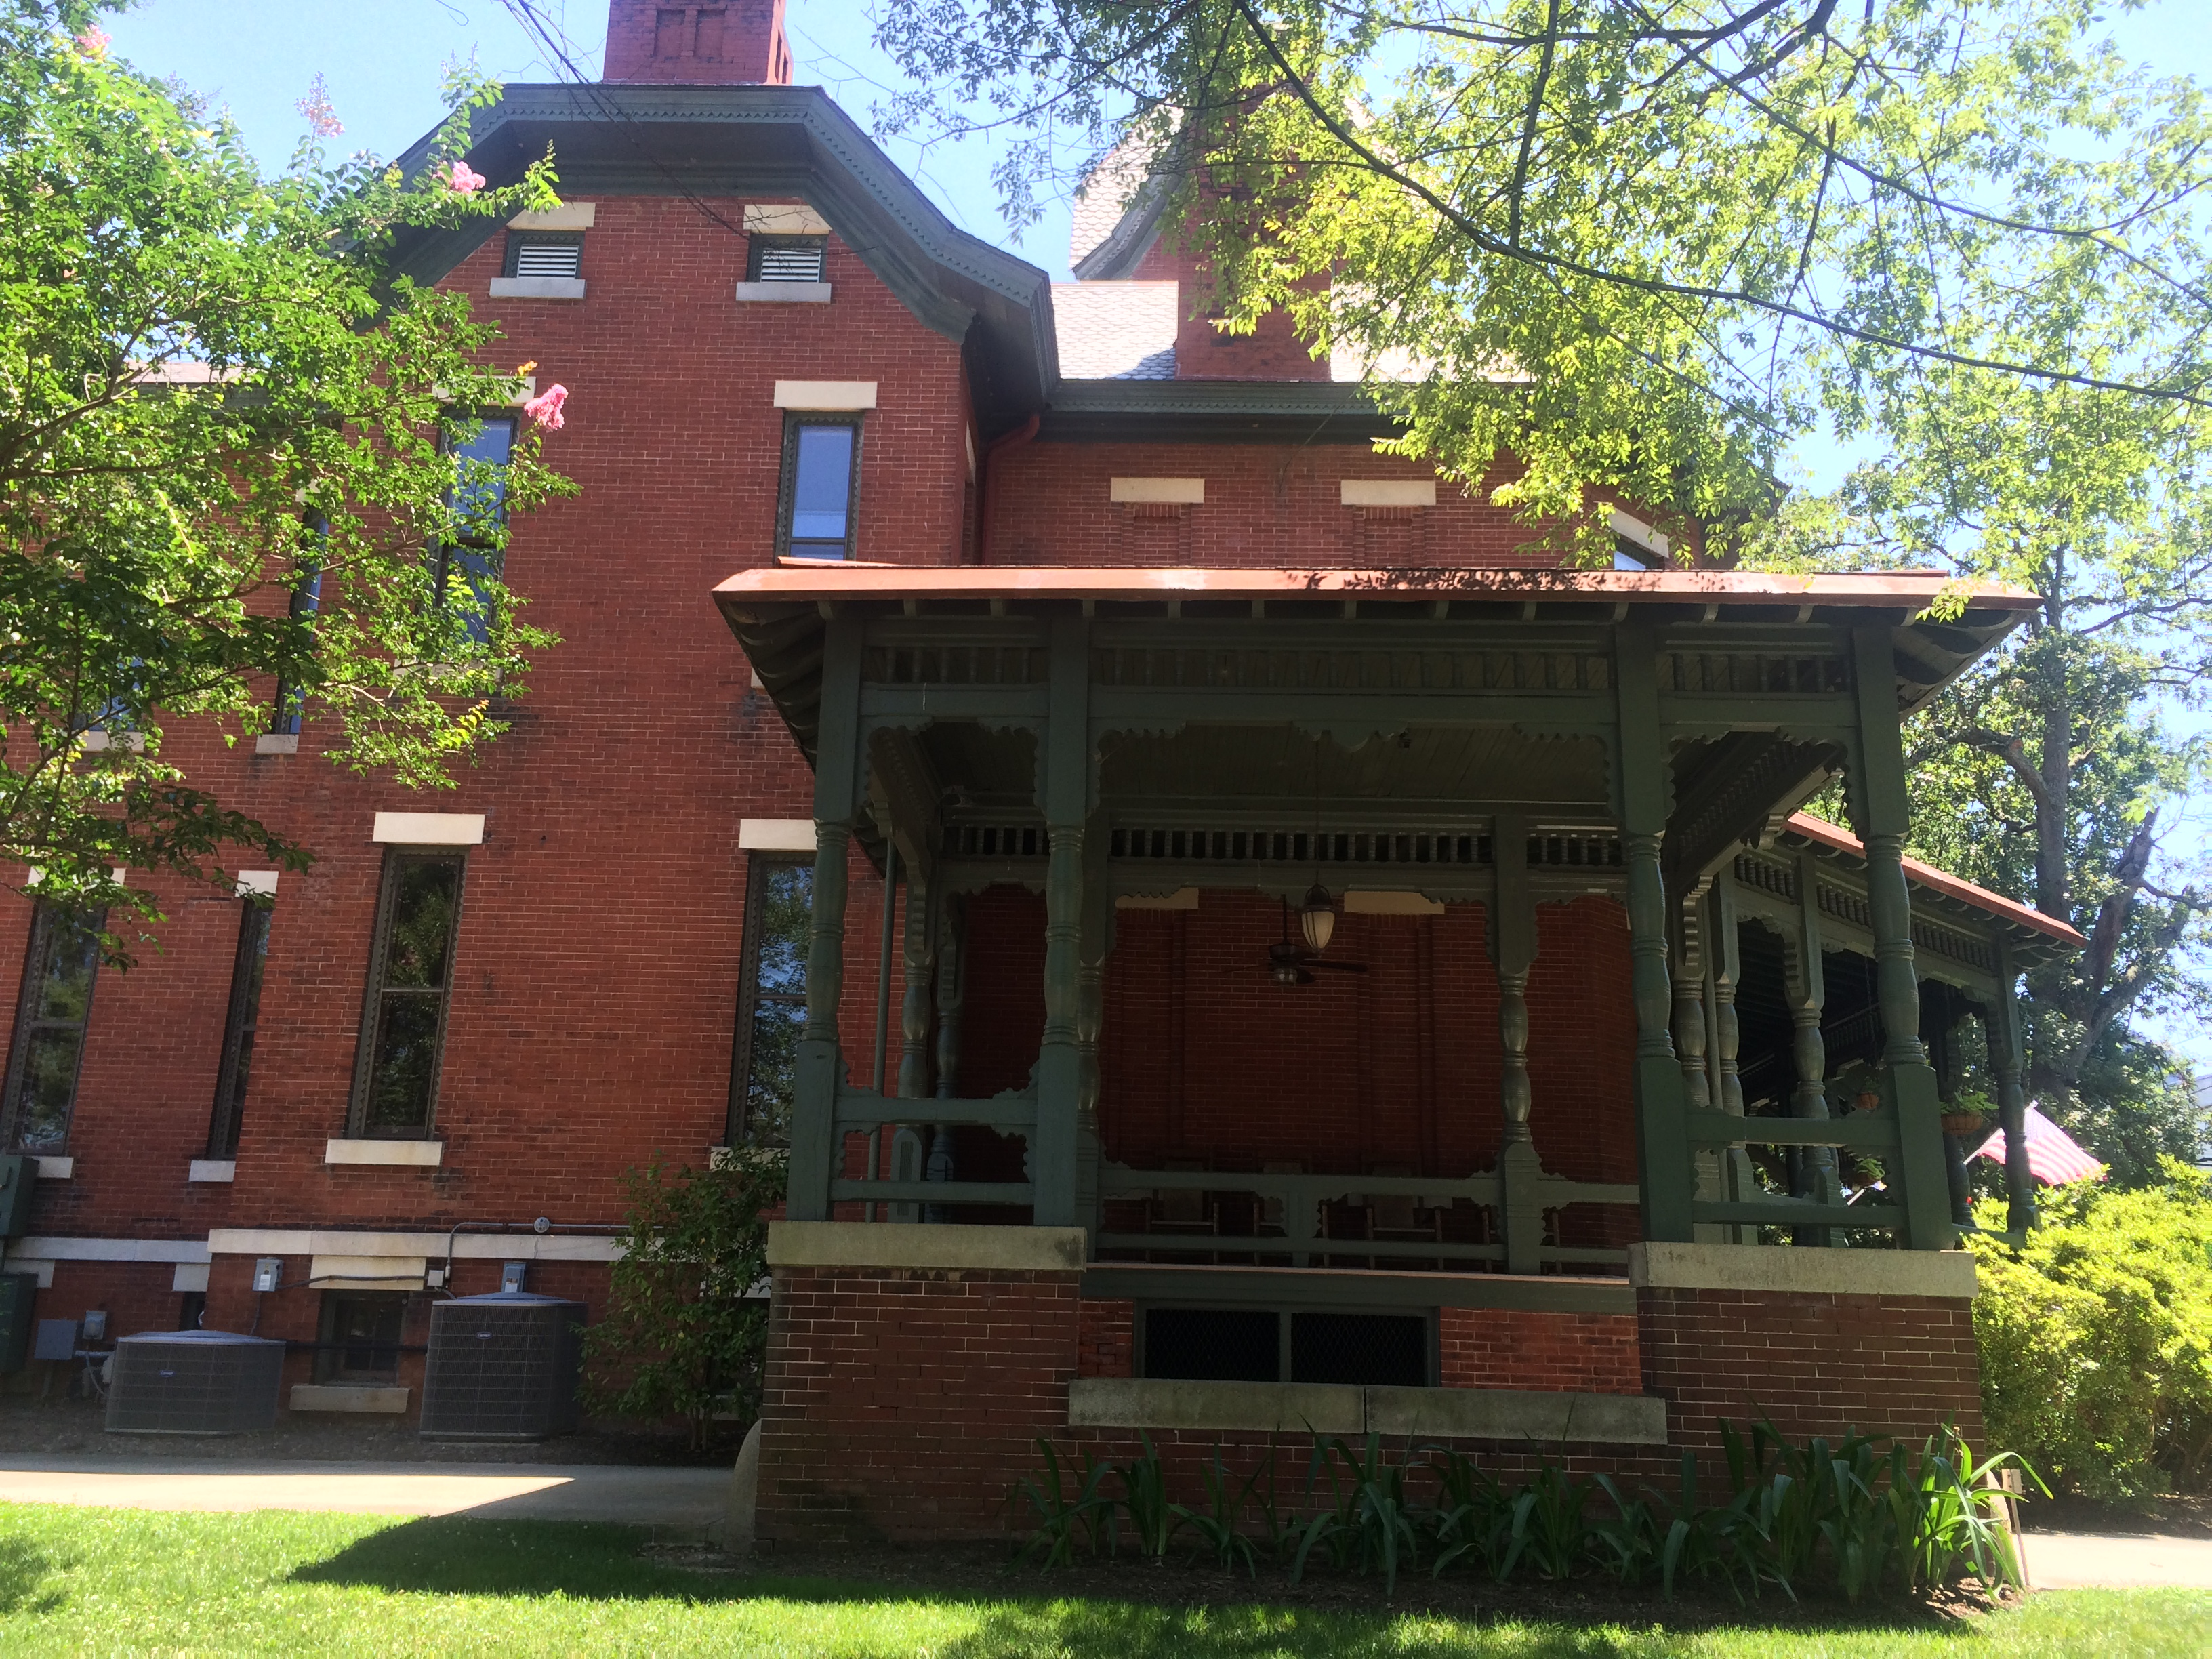 A view of the northern facade, taken facing south. This perspective emphasizes the iconic large verandah.